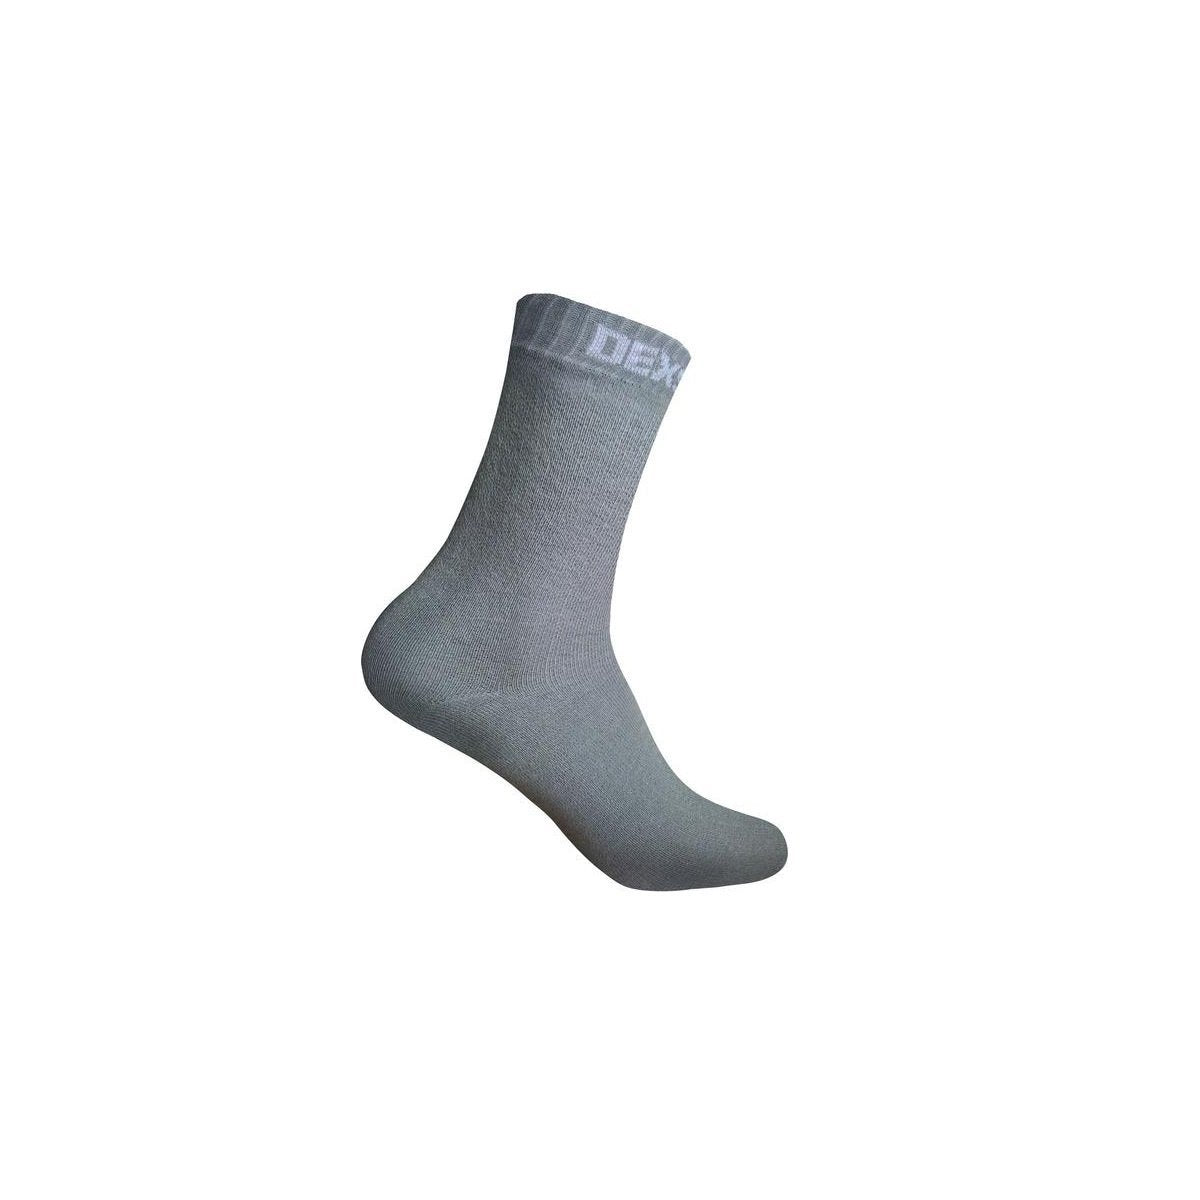 Dexshell Cycle Clothing > Socks Dexshell Waterproof Ultra Thin Sock Modal Outer Layer Grey